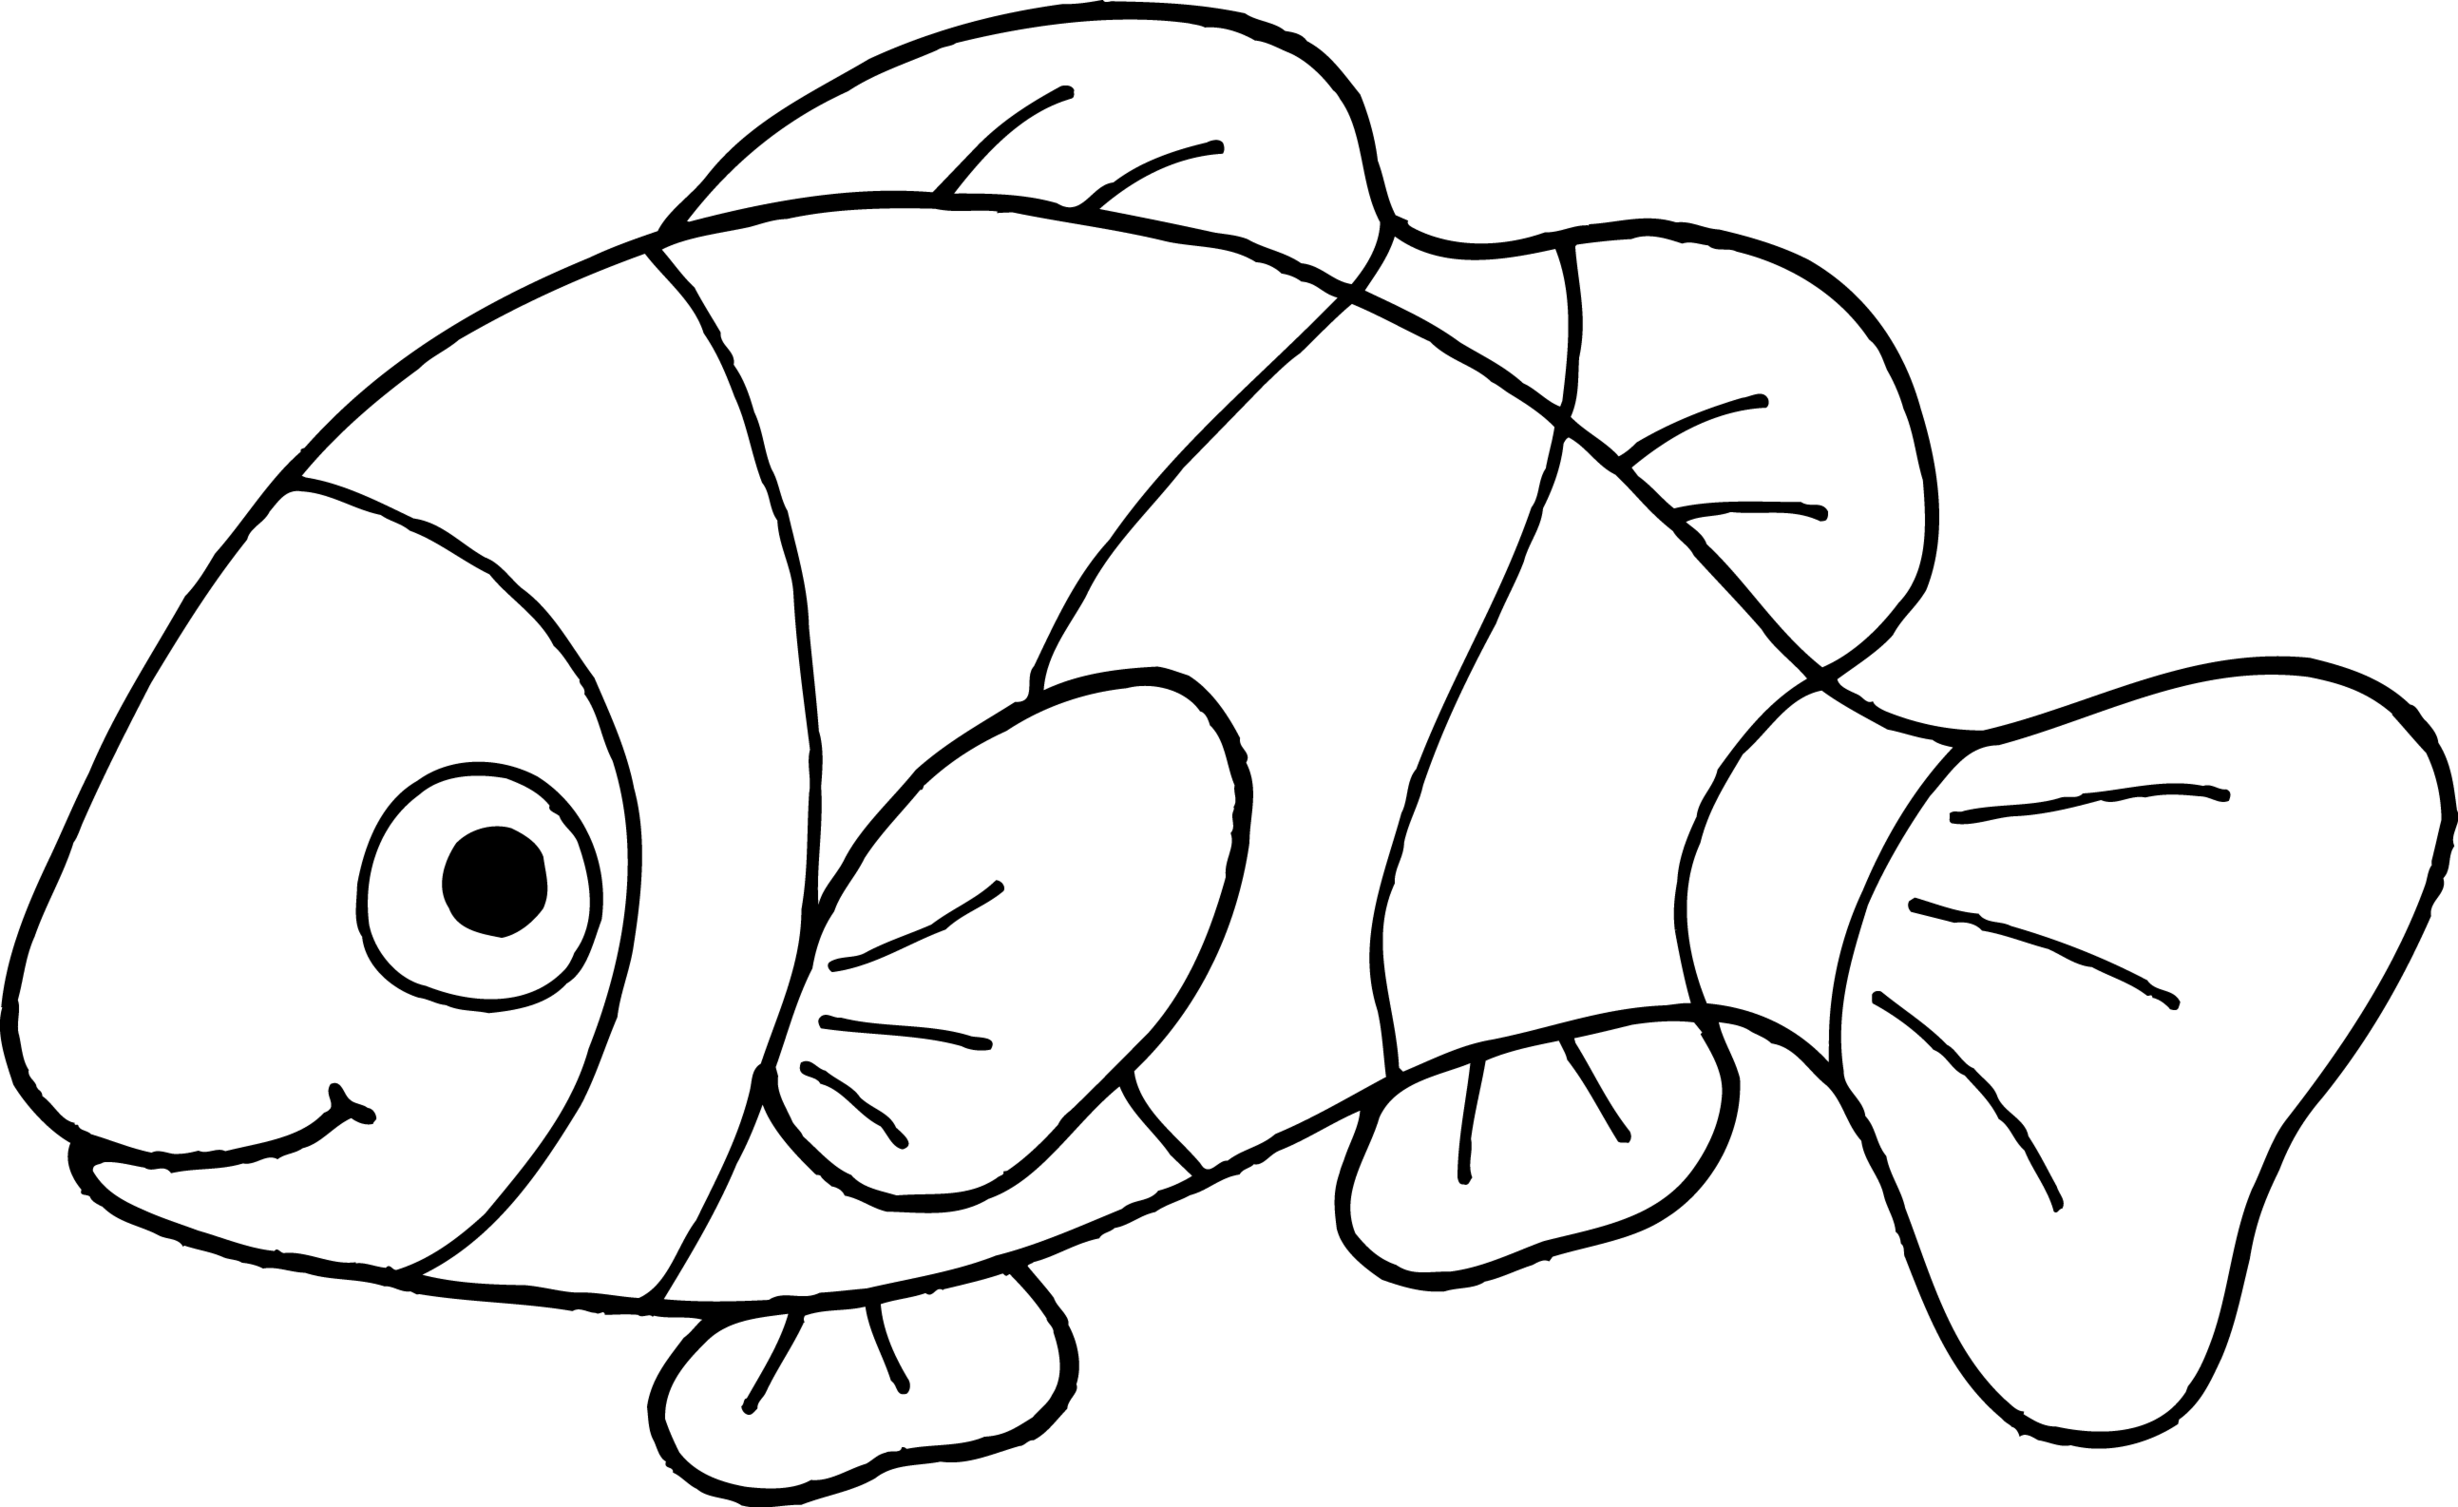 Clown Fish Clipart Black And White   Free download best Clown Fish ...